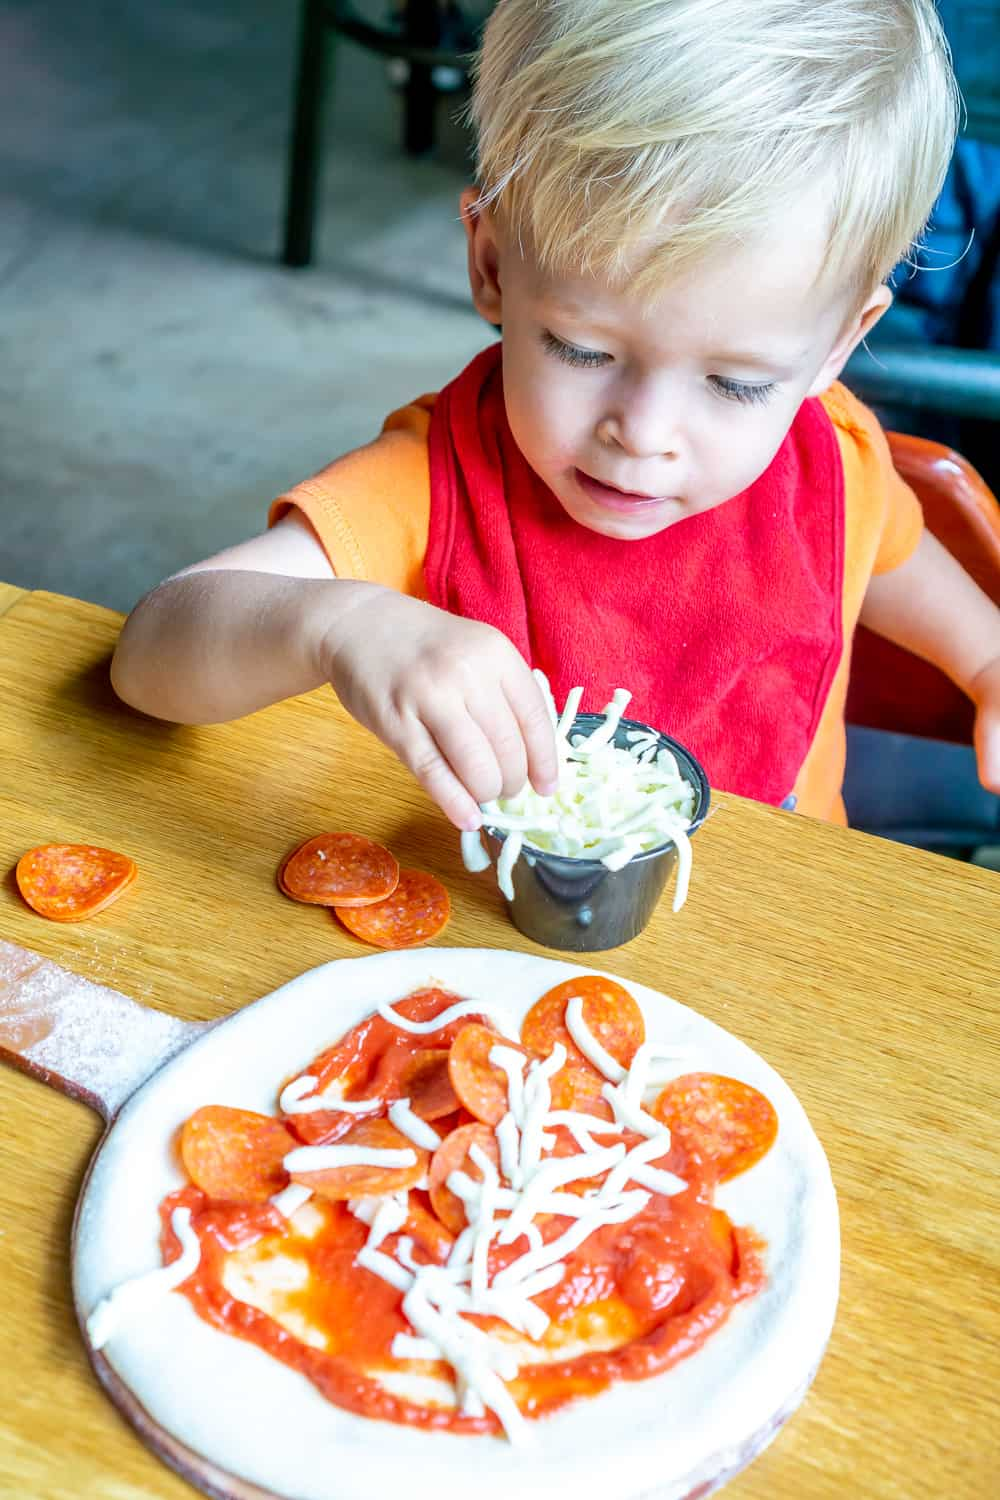 build your own pizza from the kids menu